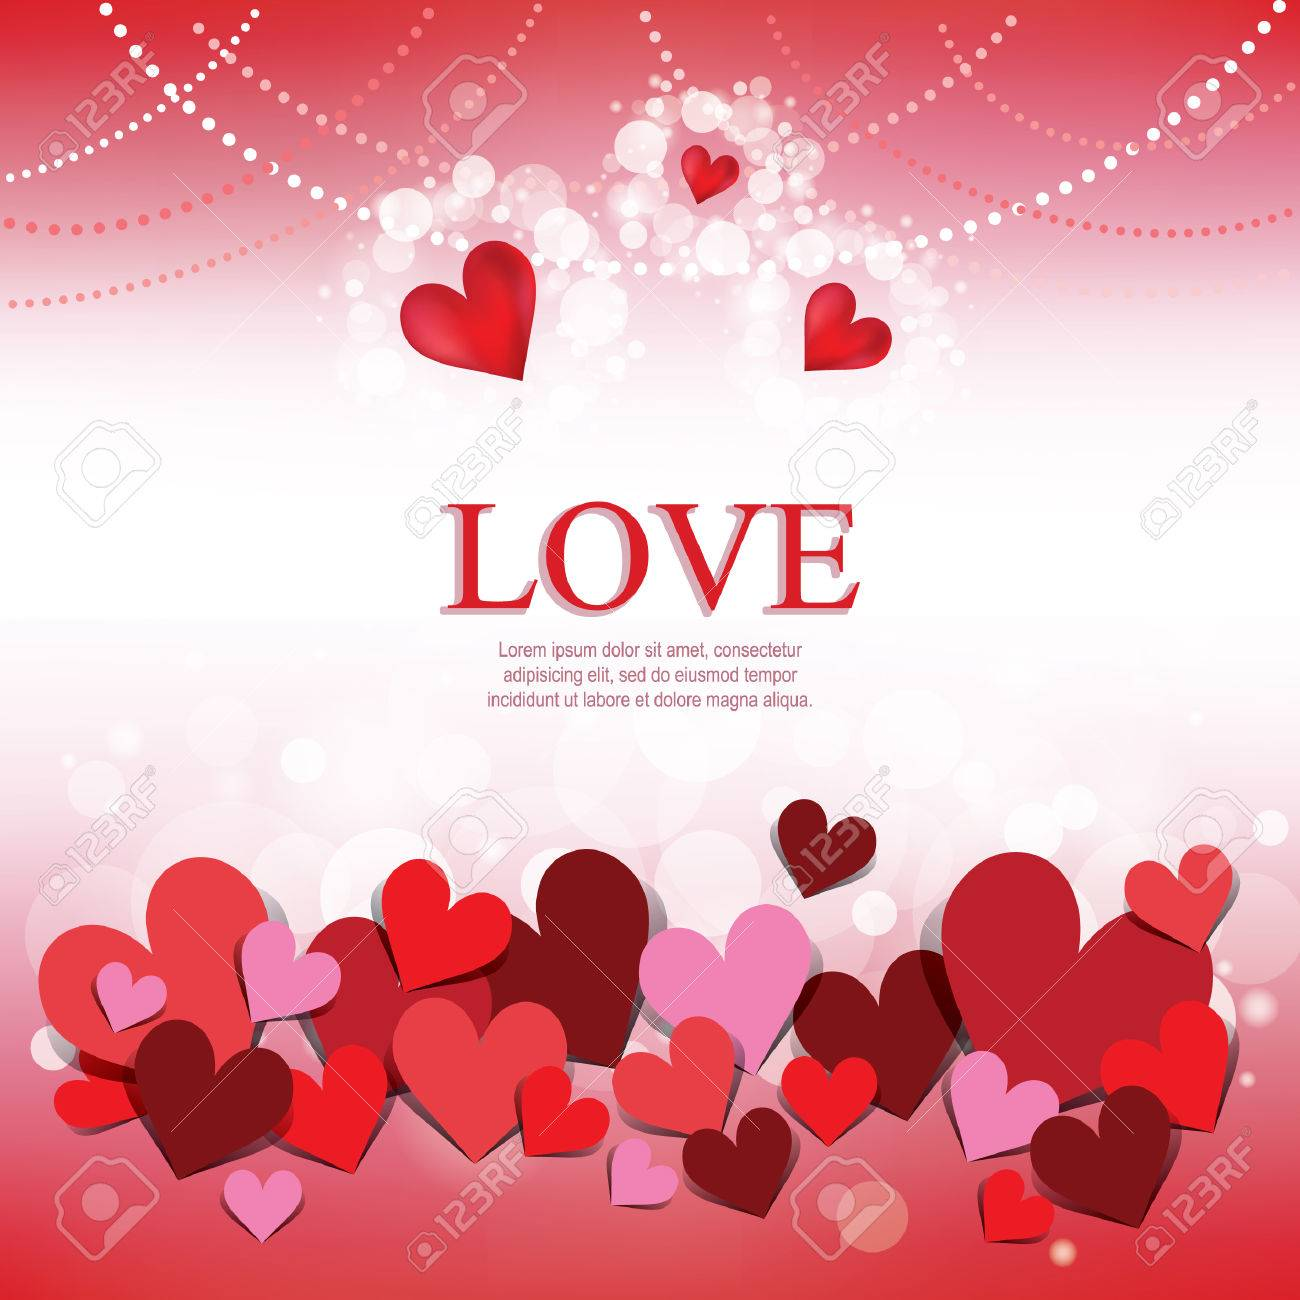 Love Wallpaper Royalty Free Cliparts Vectors And Stock